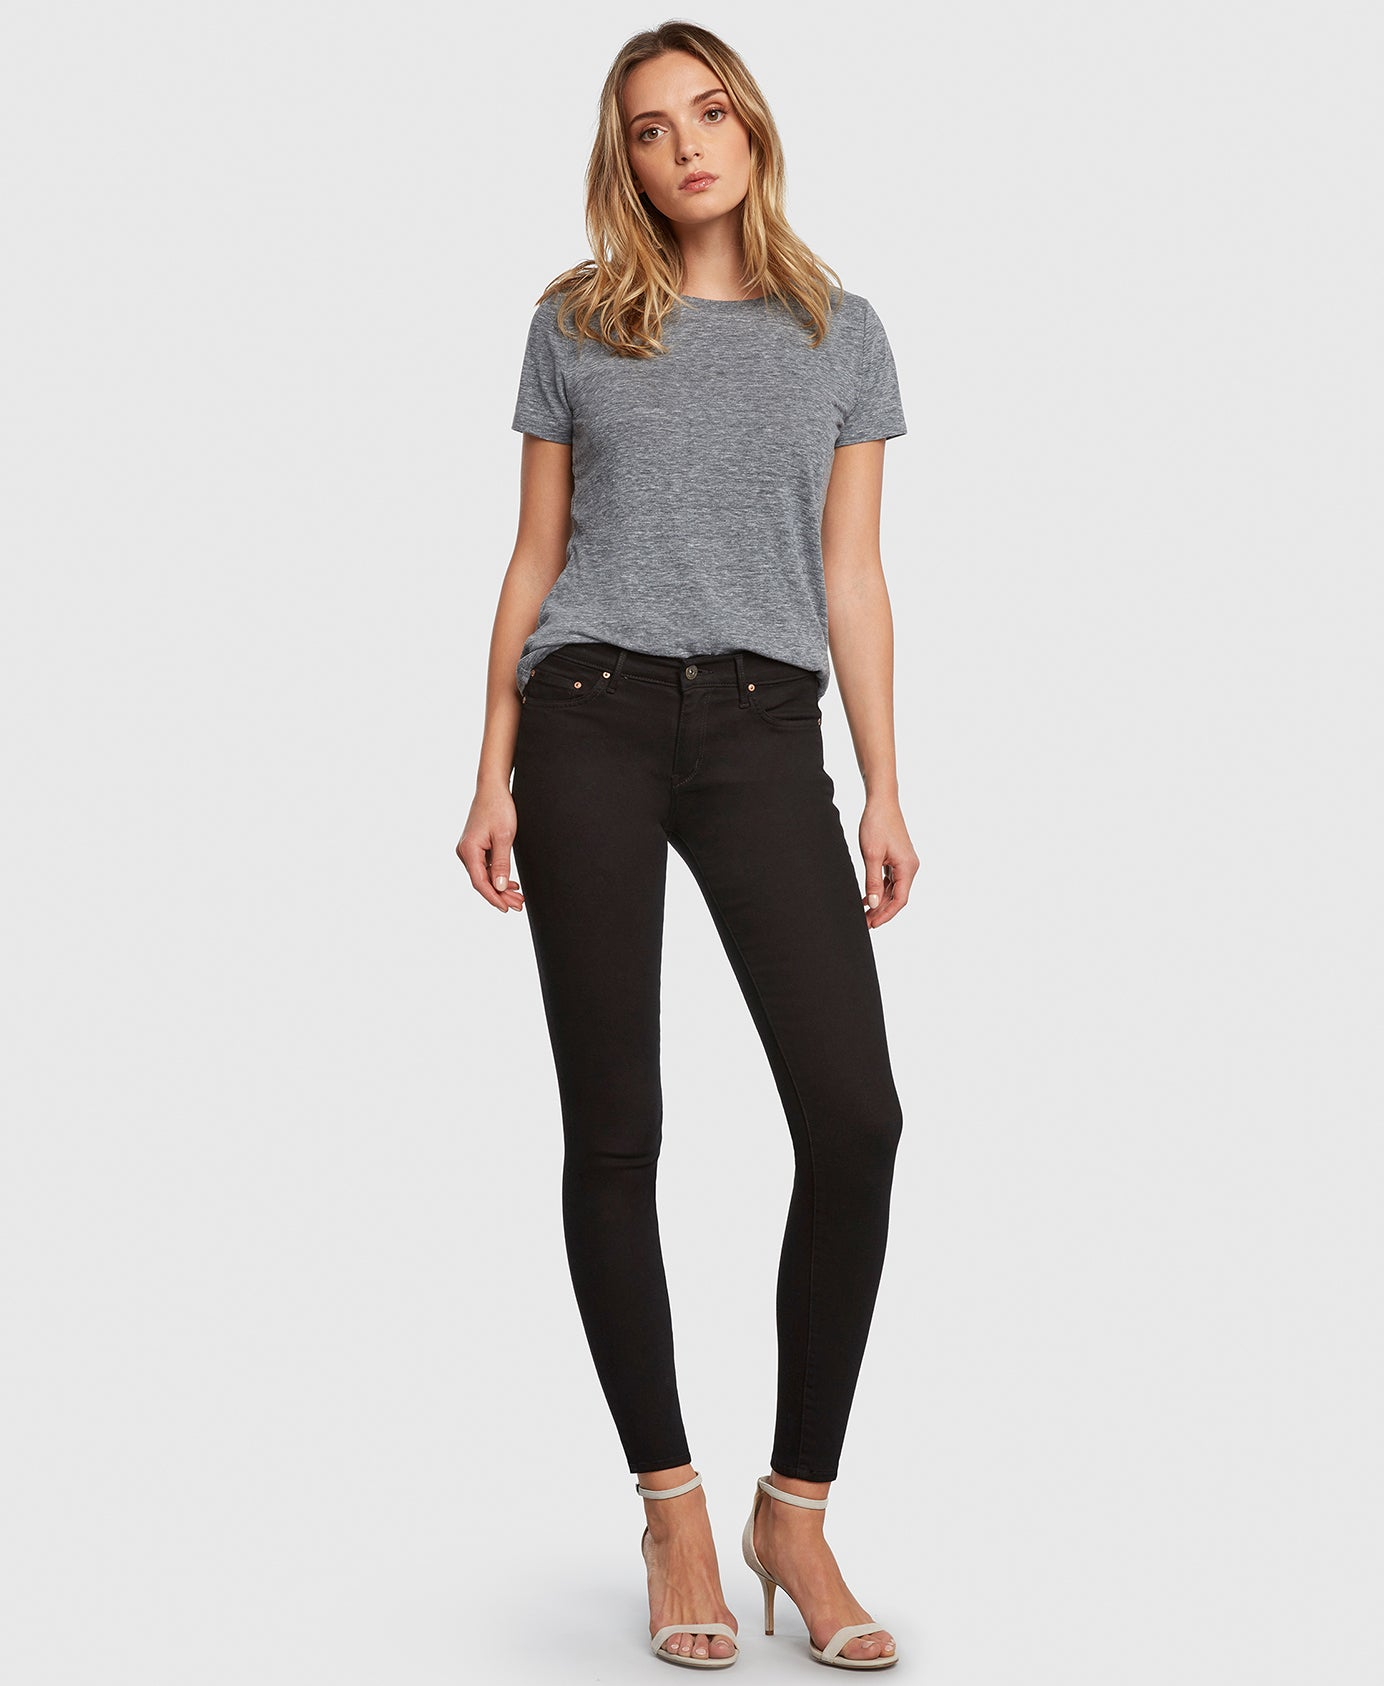 Principle DREAMER in Painted Black flattering skinny jeans